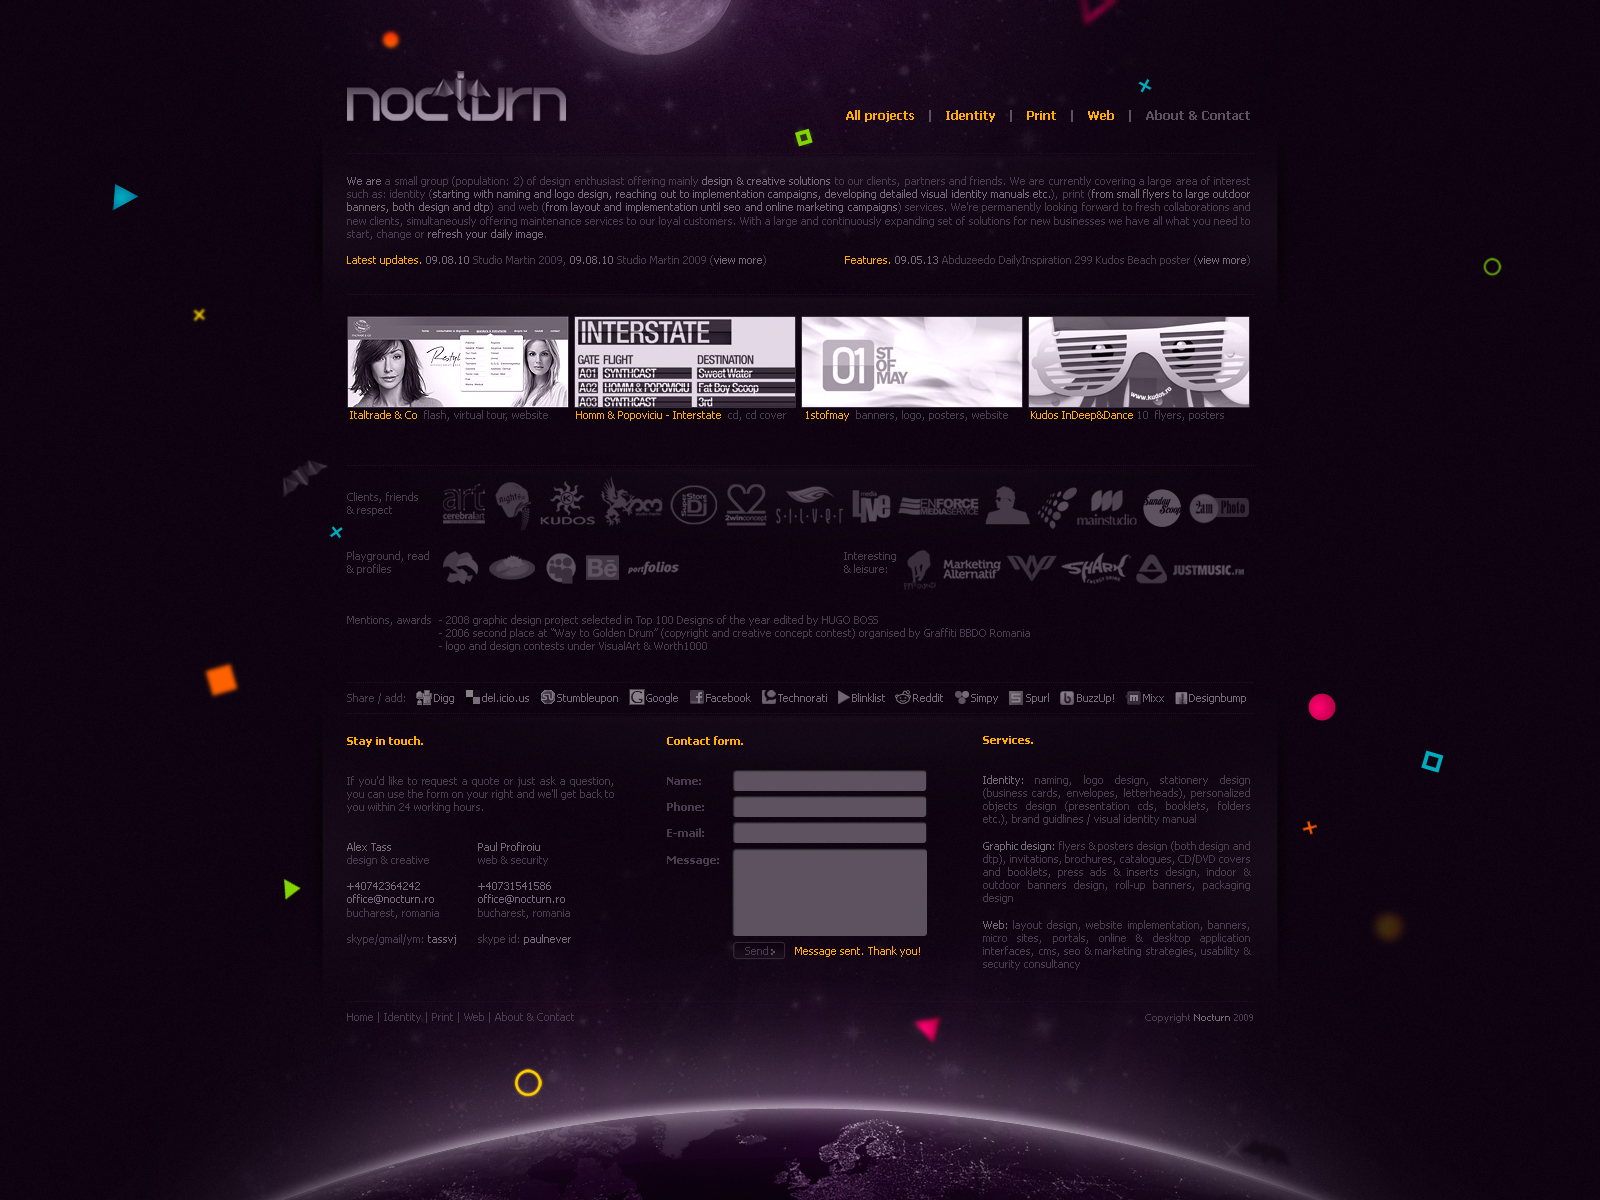 Nocturn - logo, identity and graphic design studio - portfolio website layout design